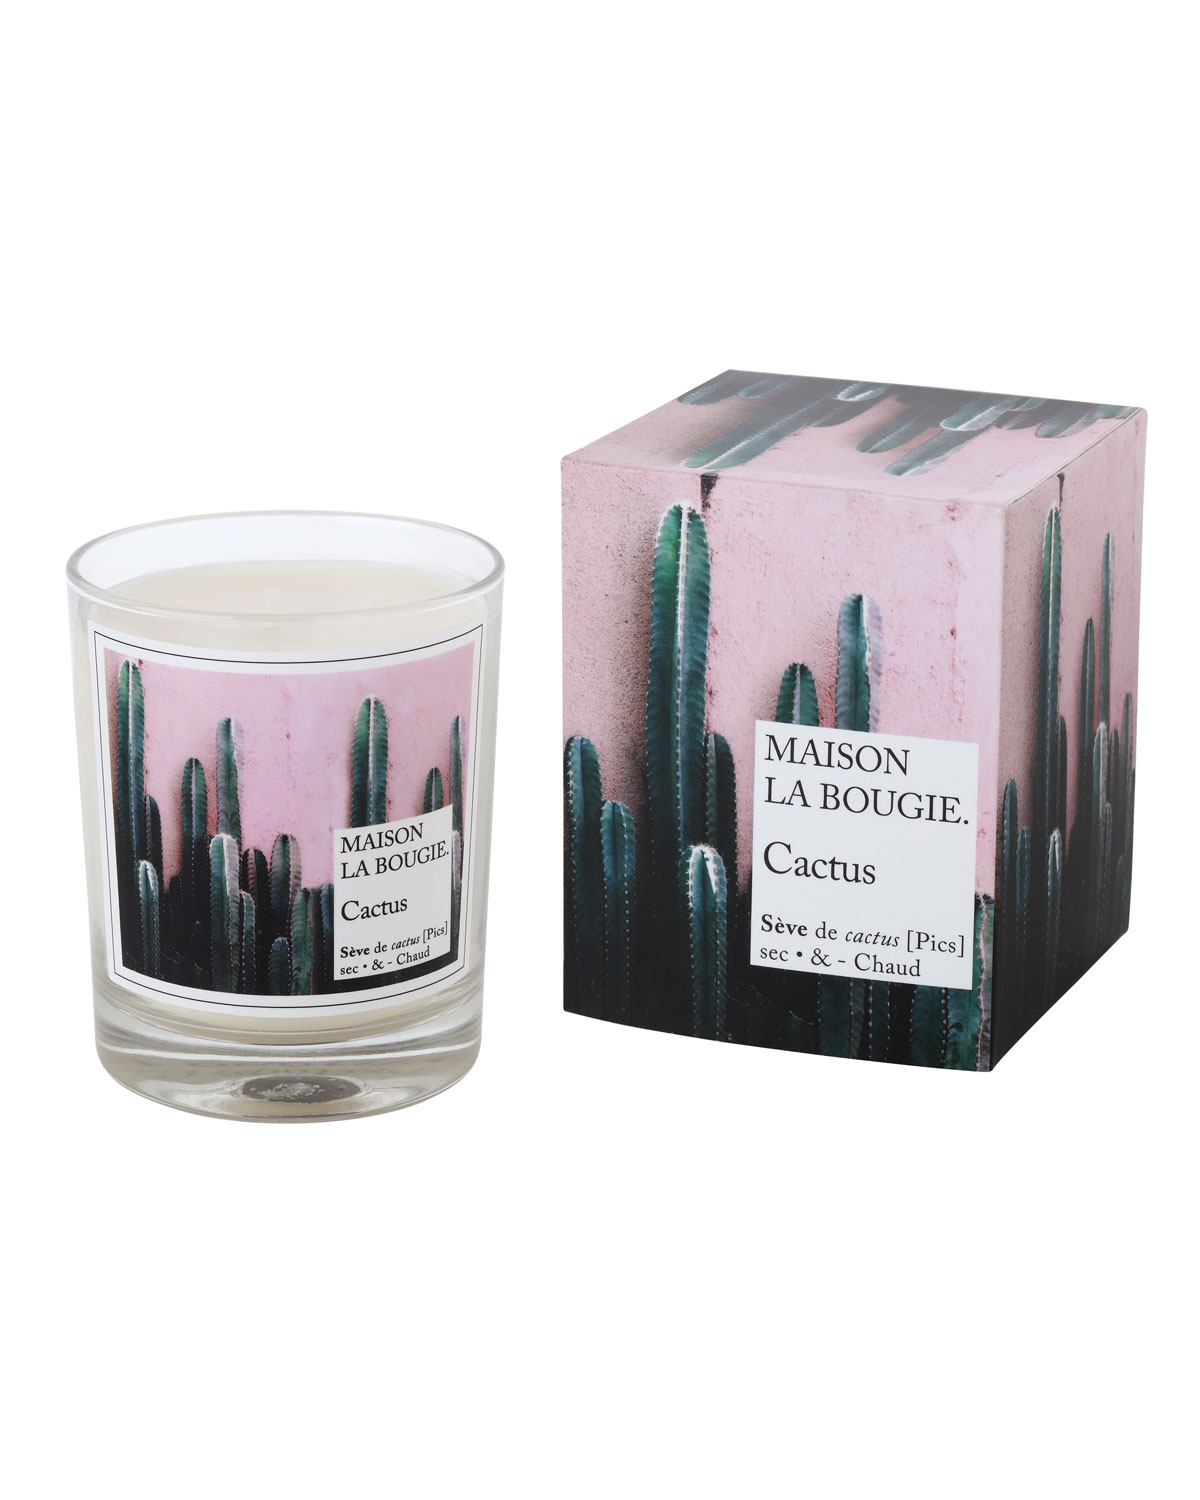 6.7 oz. Cactus Scented Candle